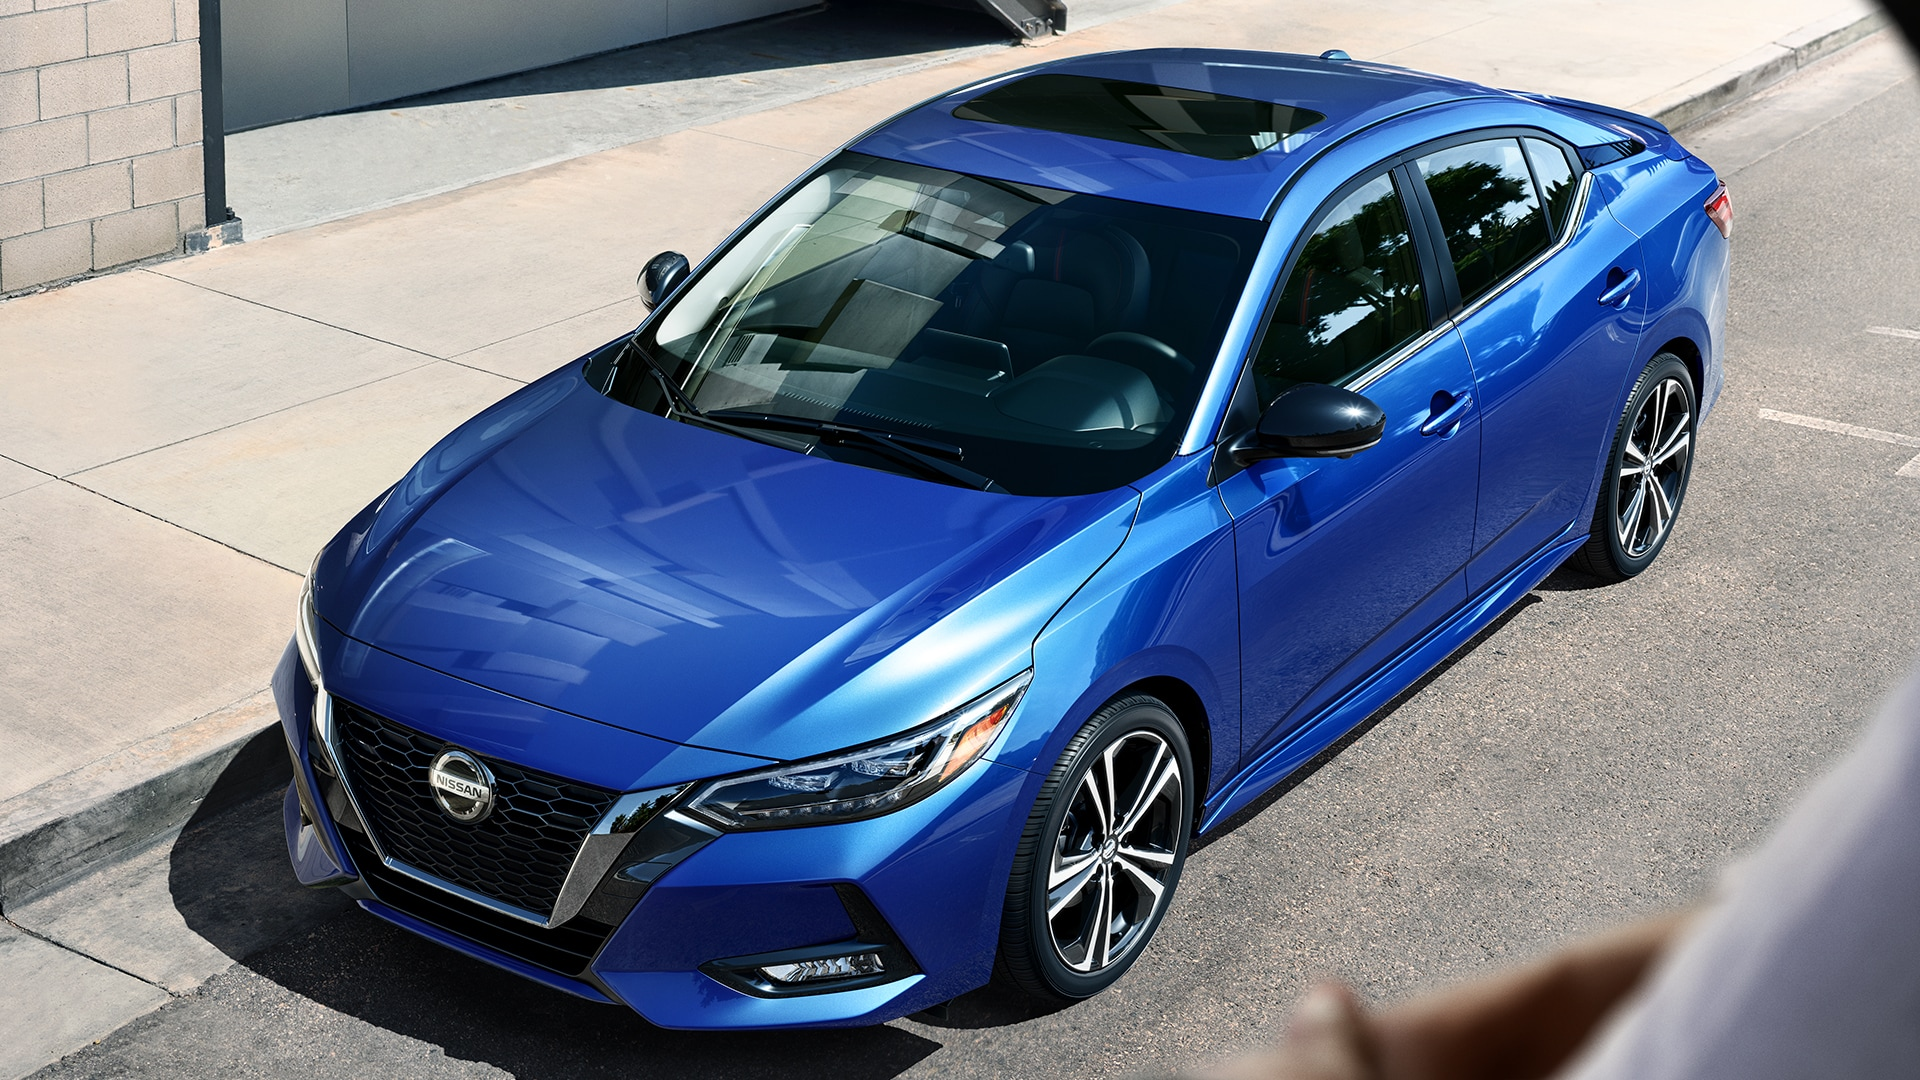 New 2020 Nissan Sentra Specs & Review